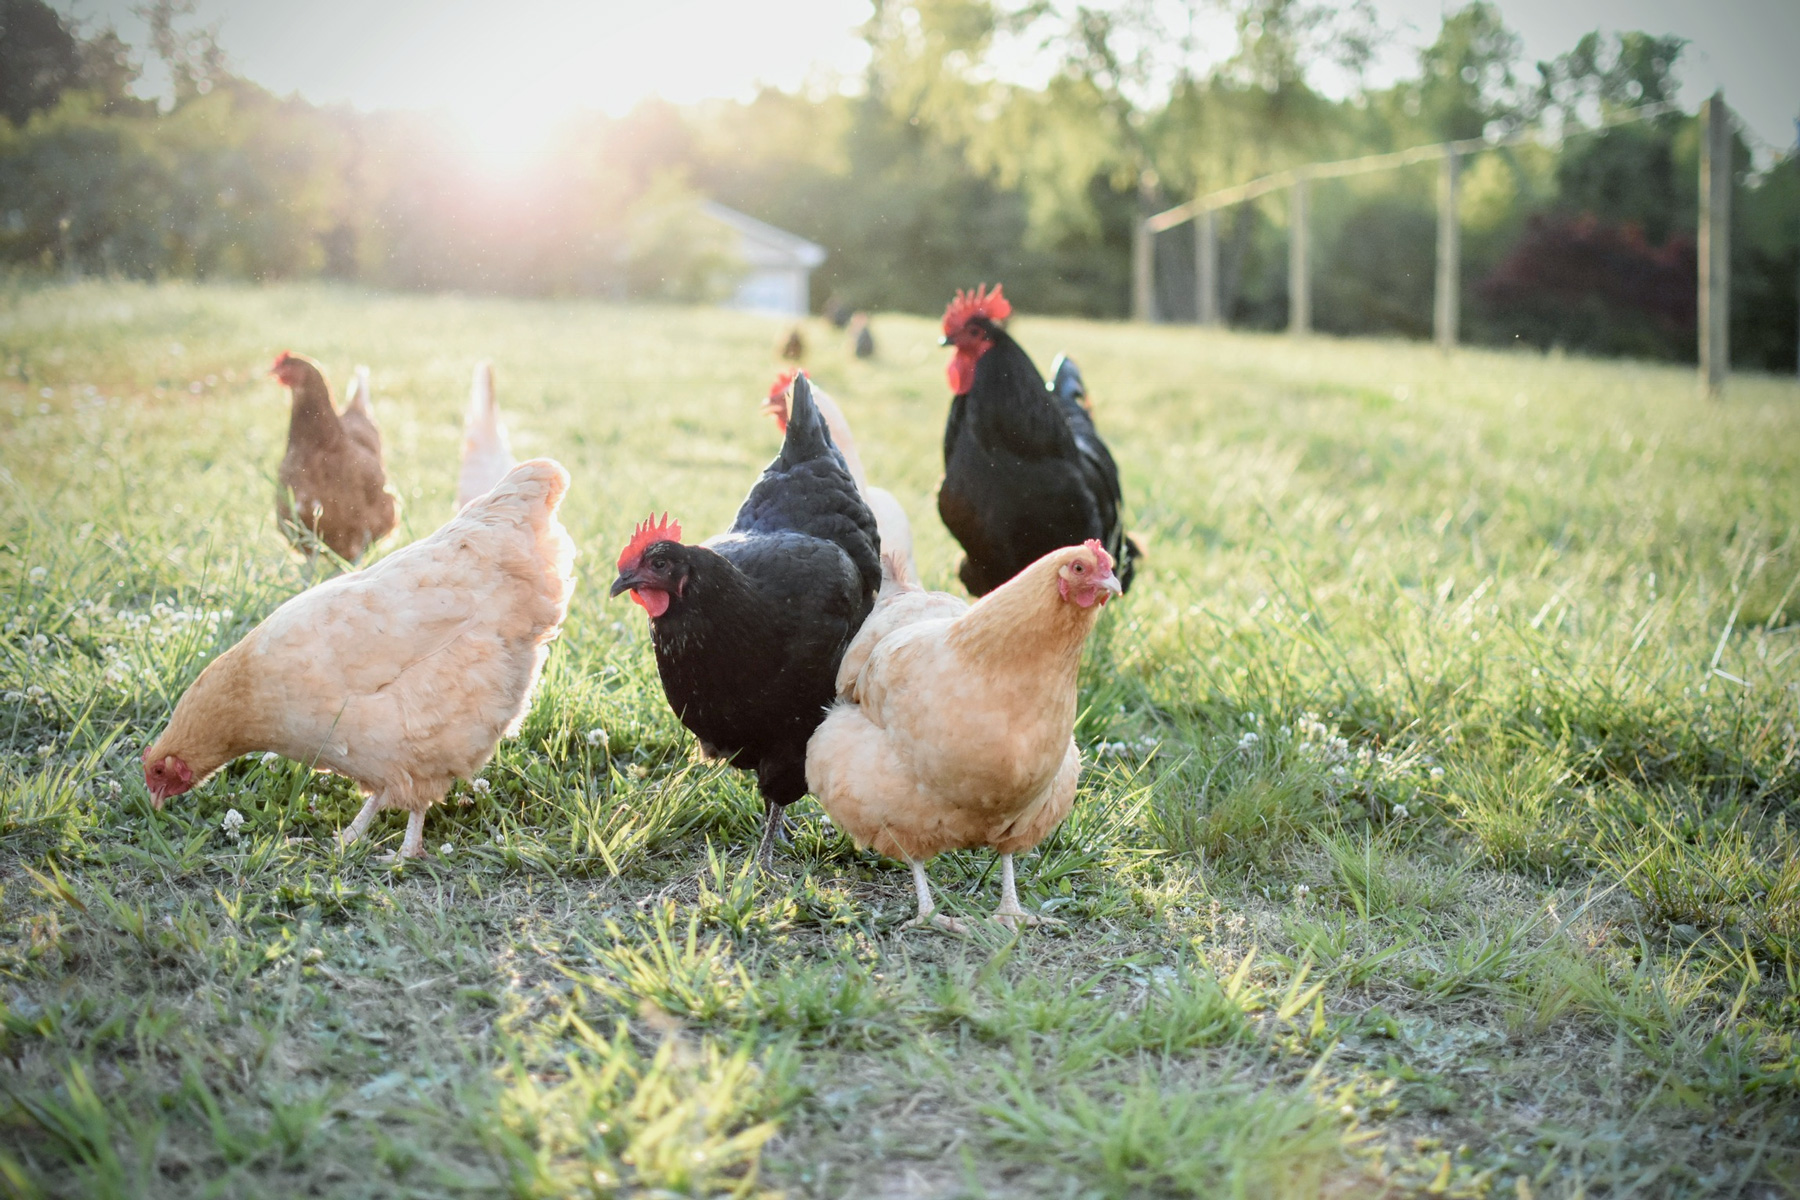 Gail Damerow Discusses a Hen's Laying Cycles and Life Span